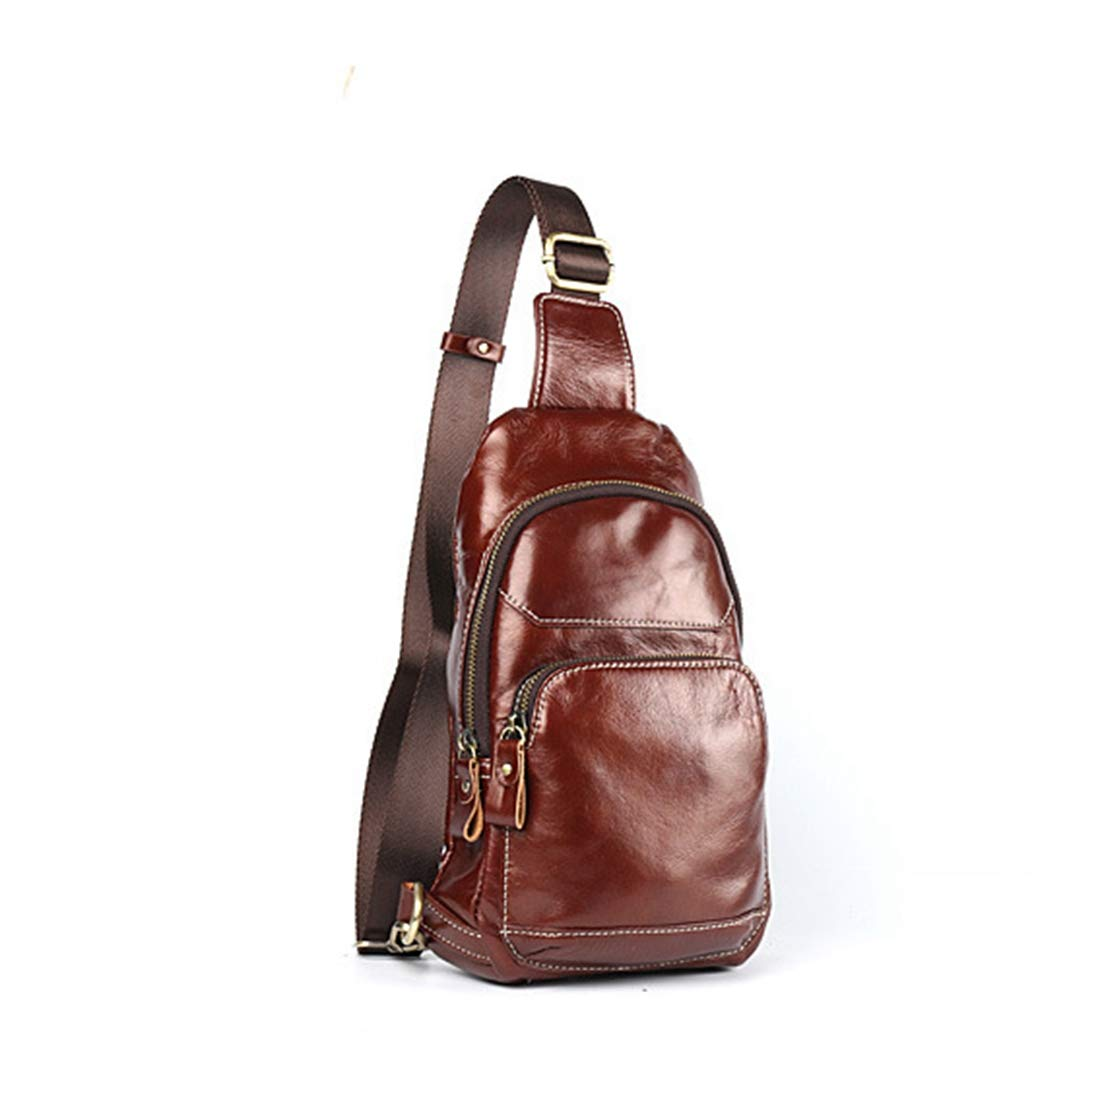 Carriemeow Men Chest Bag Genuine Leather Business Leisure One Shoulder Crossbody Bag Satchel Work Out Travel Bag Color : Red-Brown